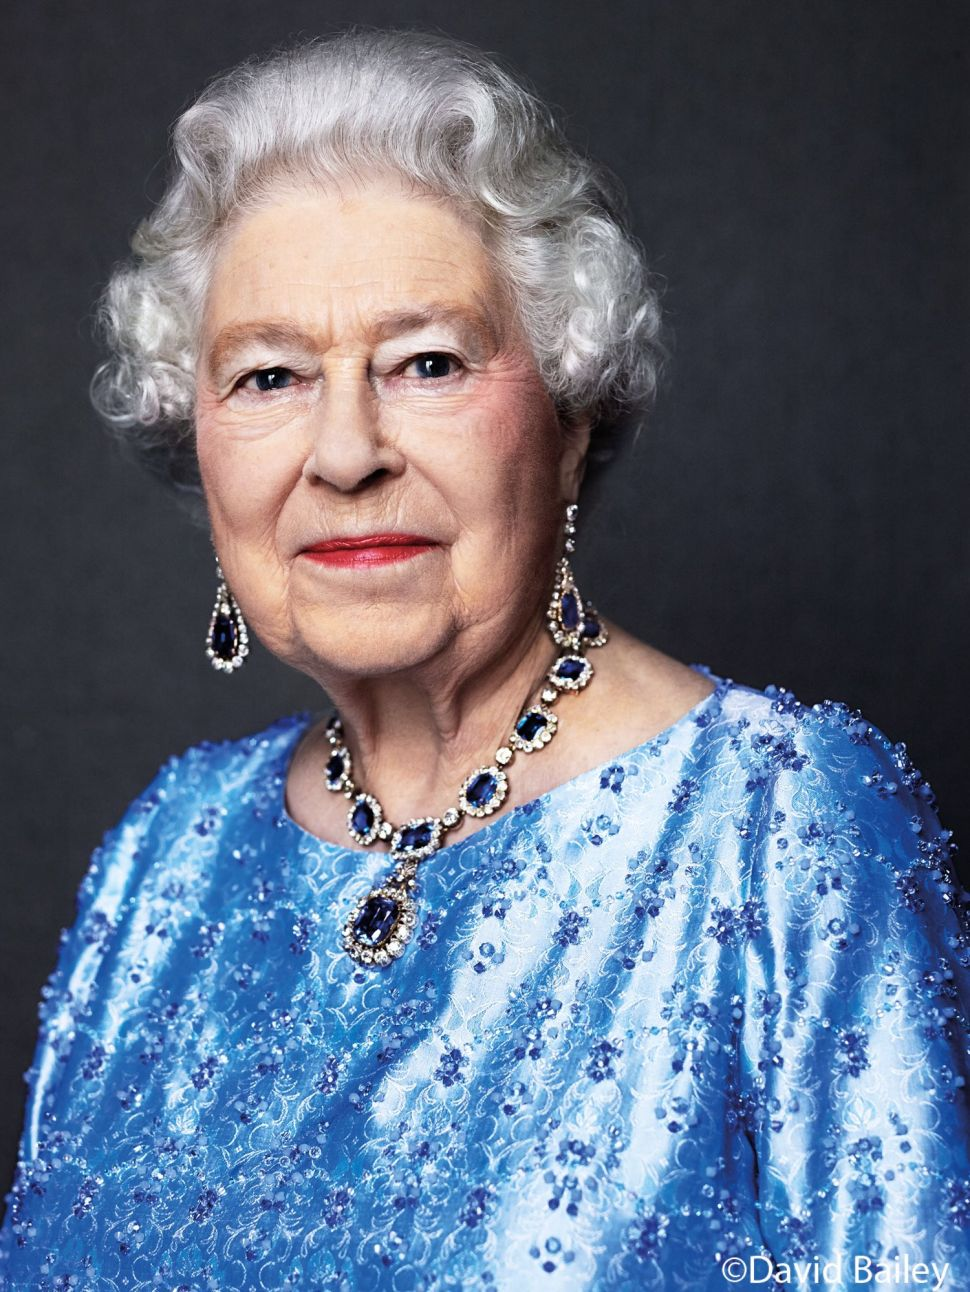 Queen Elizabeth Celebrates the Sapphire Jubilee With Lots of Sapphires